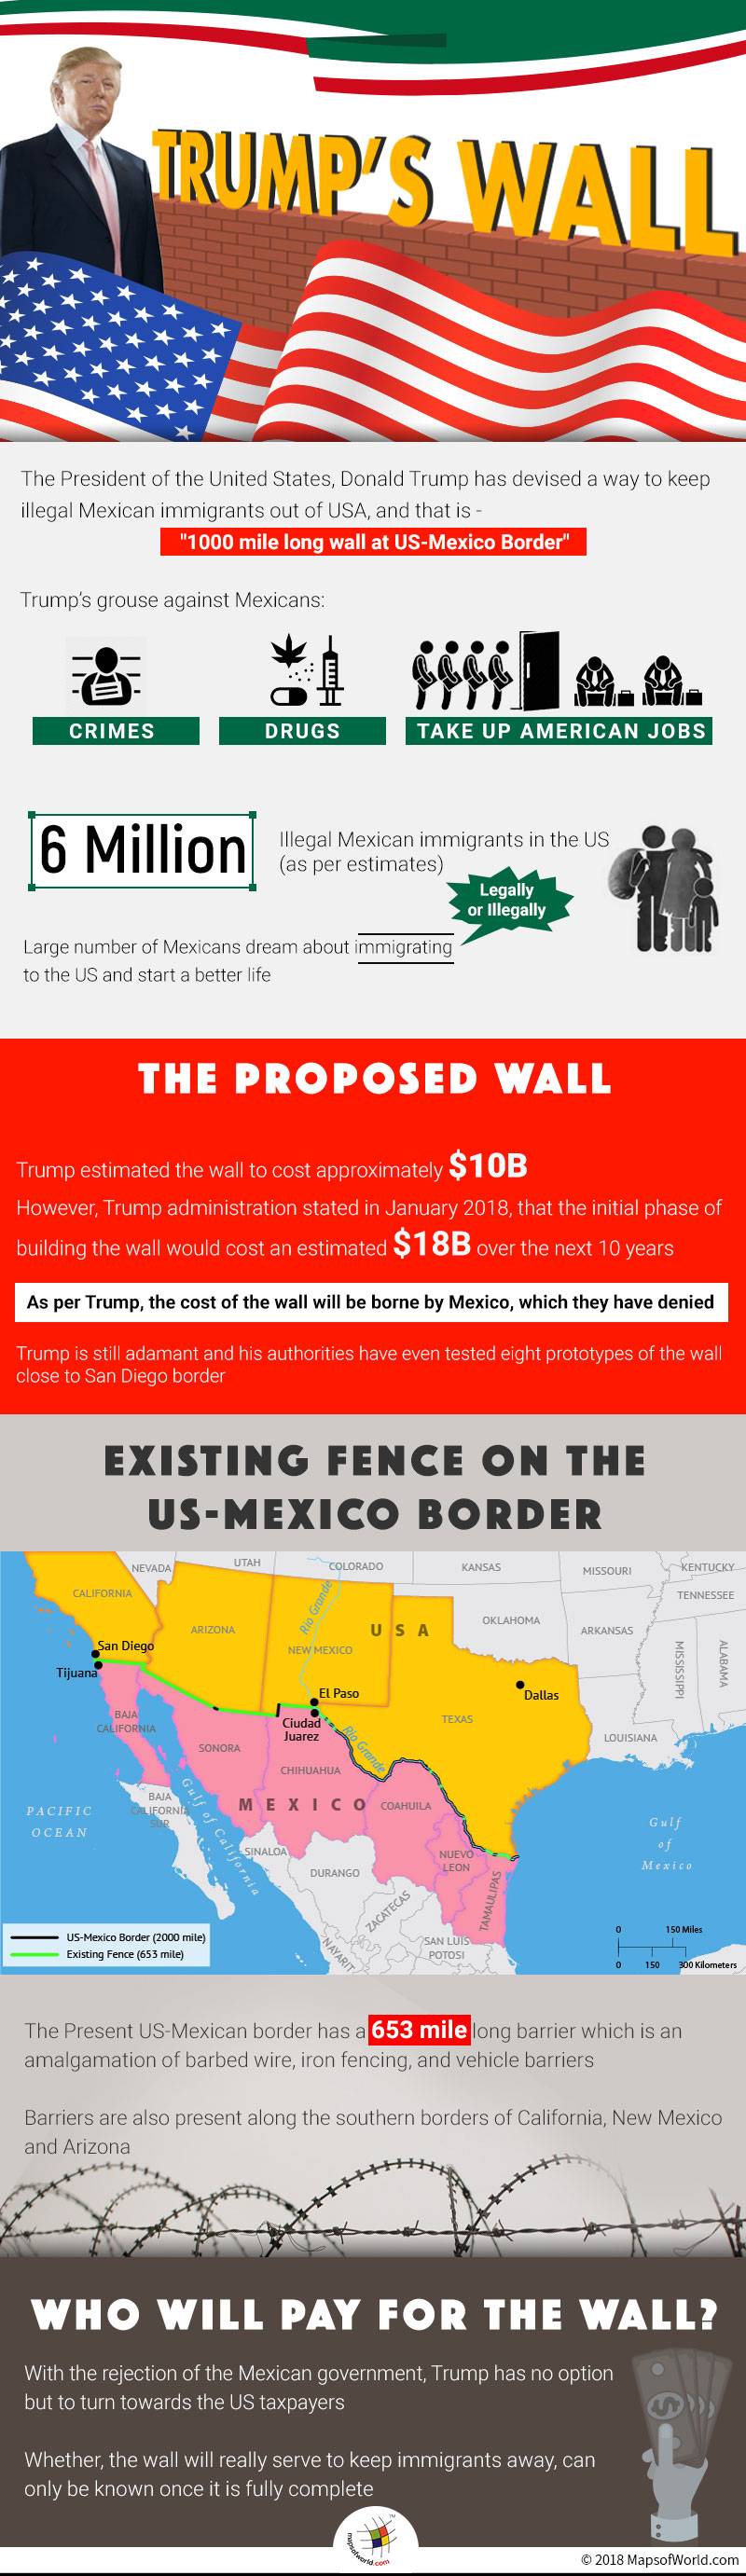 Infographic elaborating details of Trump Wall